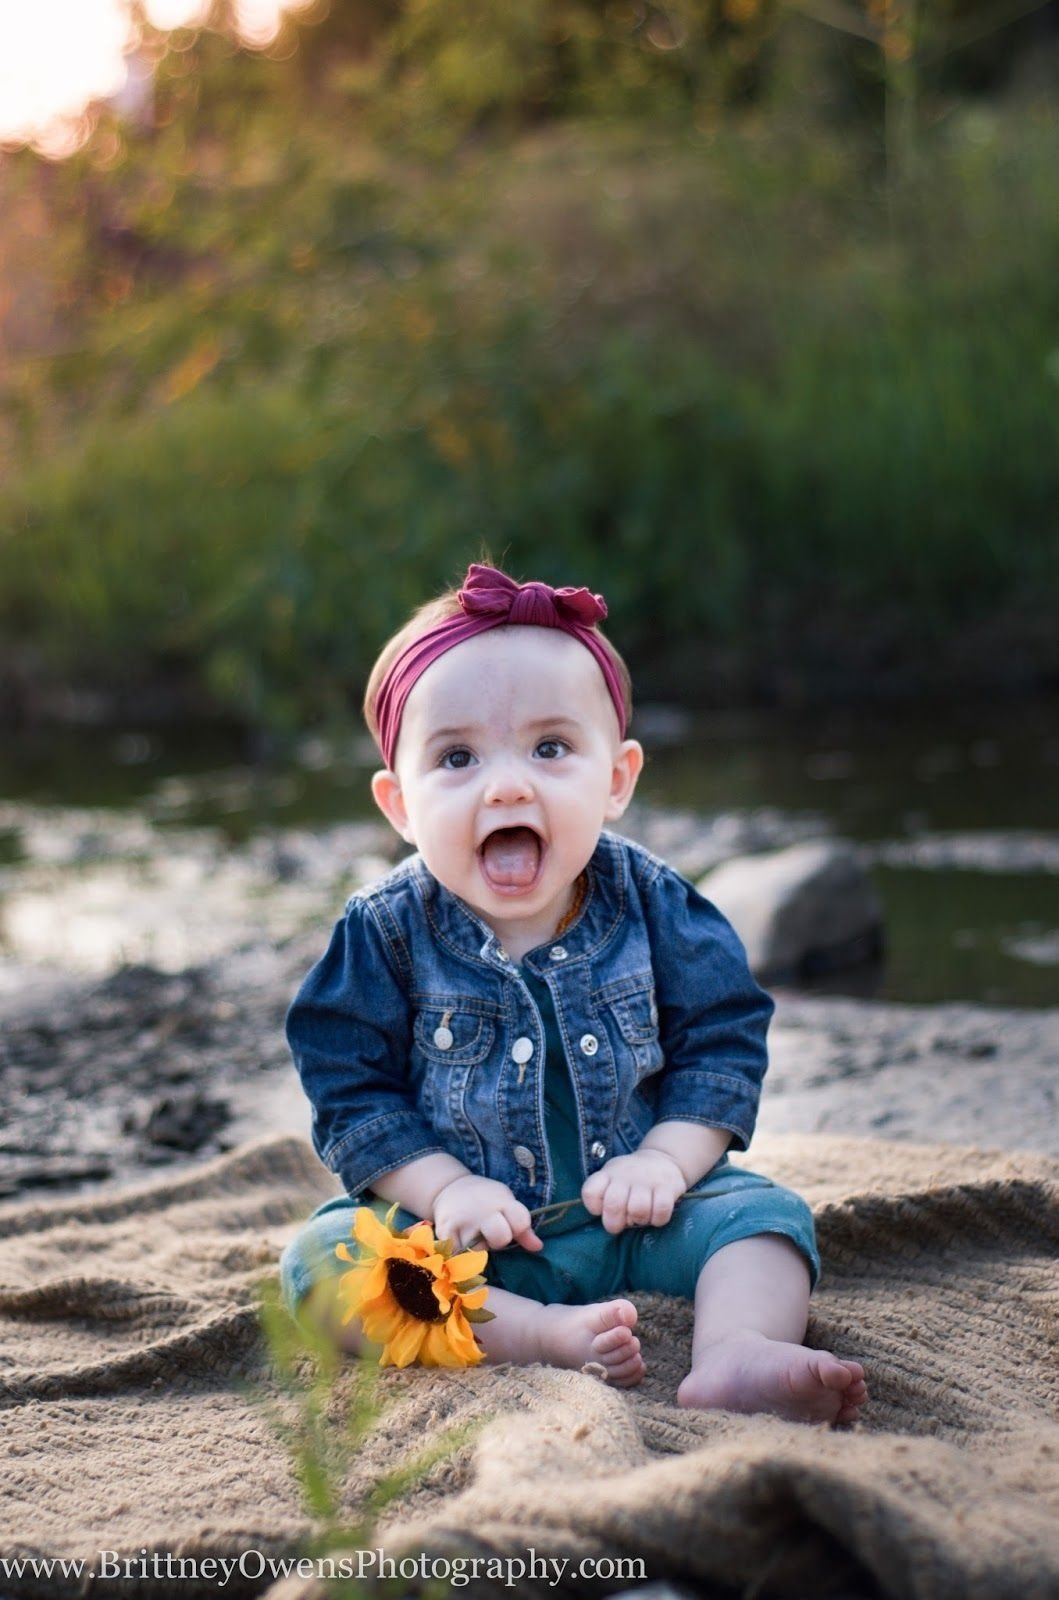 10 Stylish 9 Month Old Photo Ideas brittney owens photography baby es 9 month session fort smith ar 2020